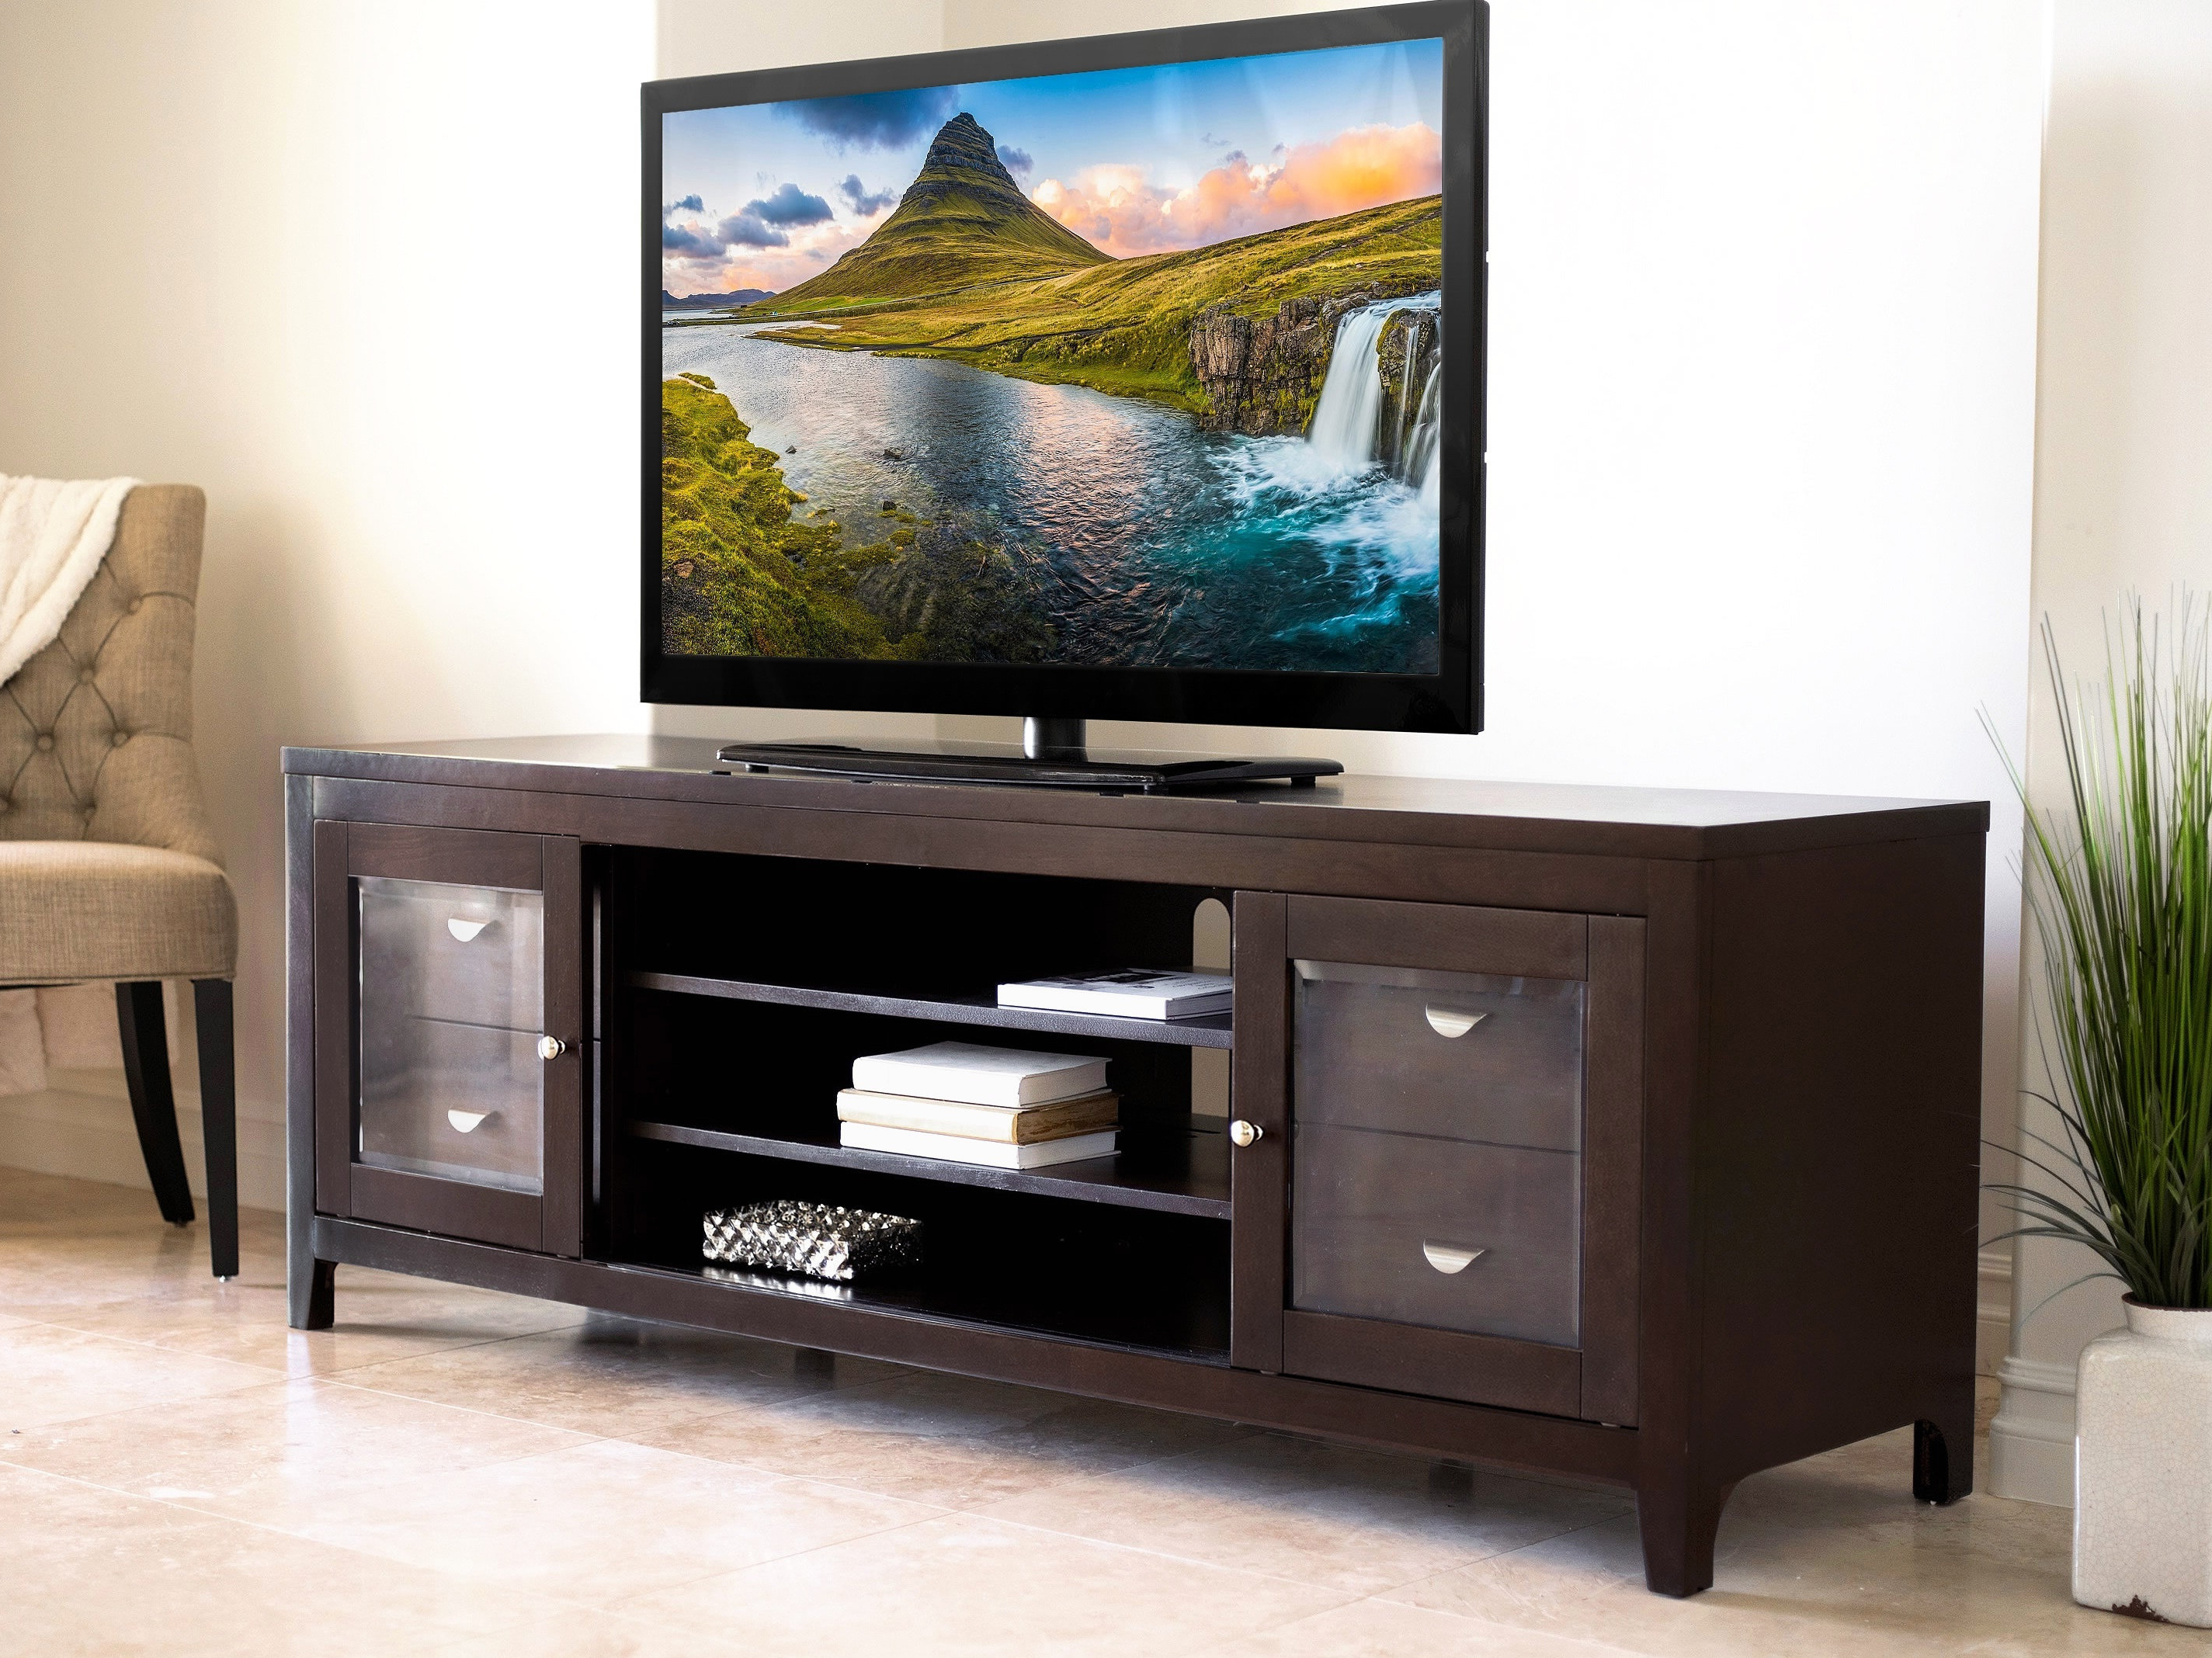 """Best And Newest Valencia 70 Inch Tv Stands For Red Barrel Studio Spilker Tv Stand For Tvs Up To 70"""" & Reviews (Gallery 11 of 20)"""